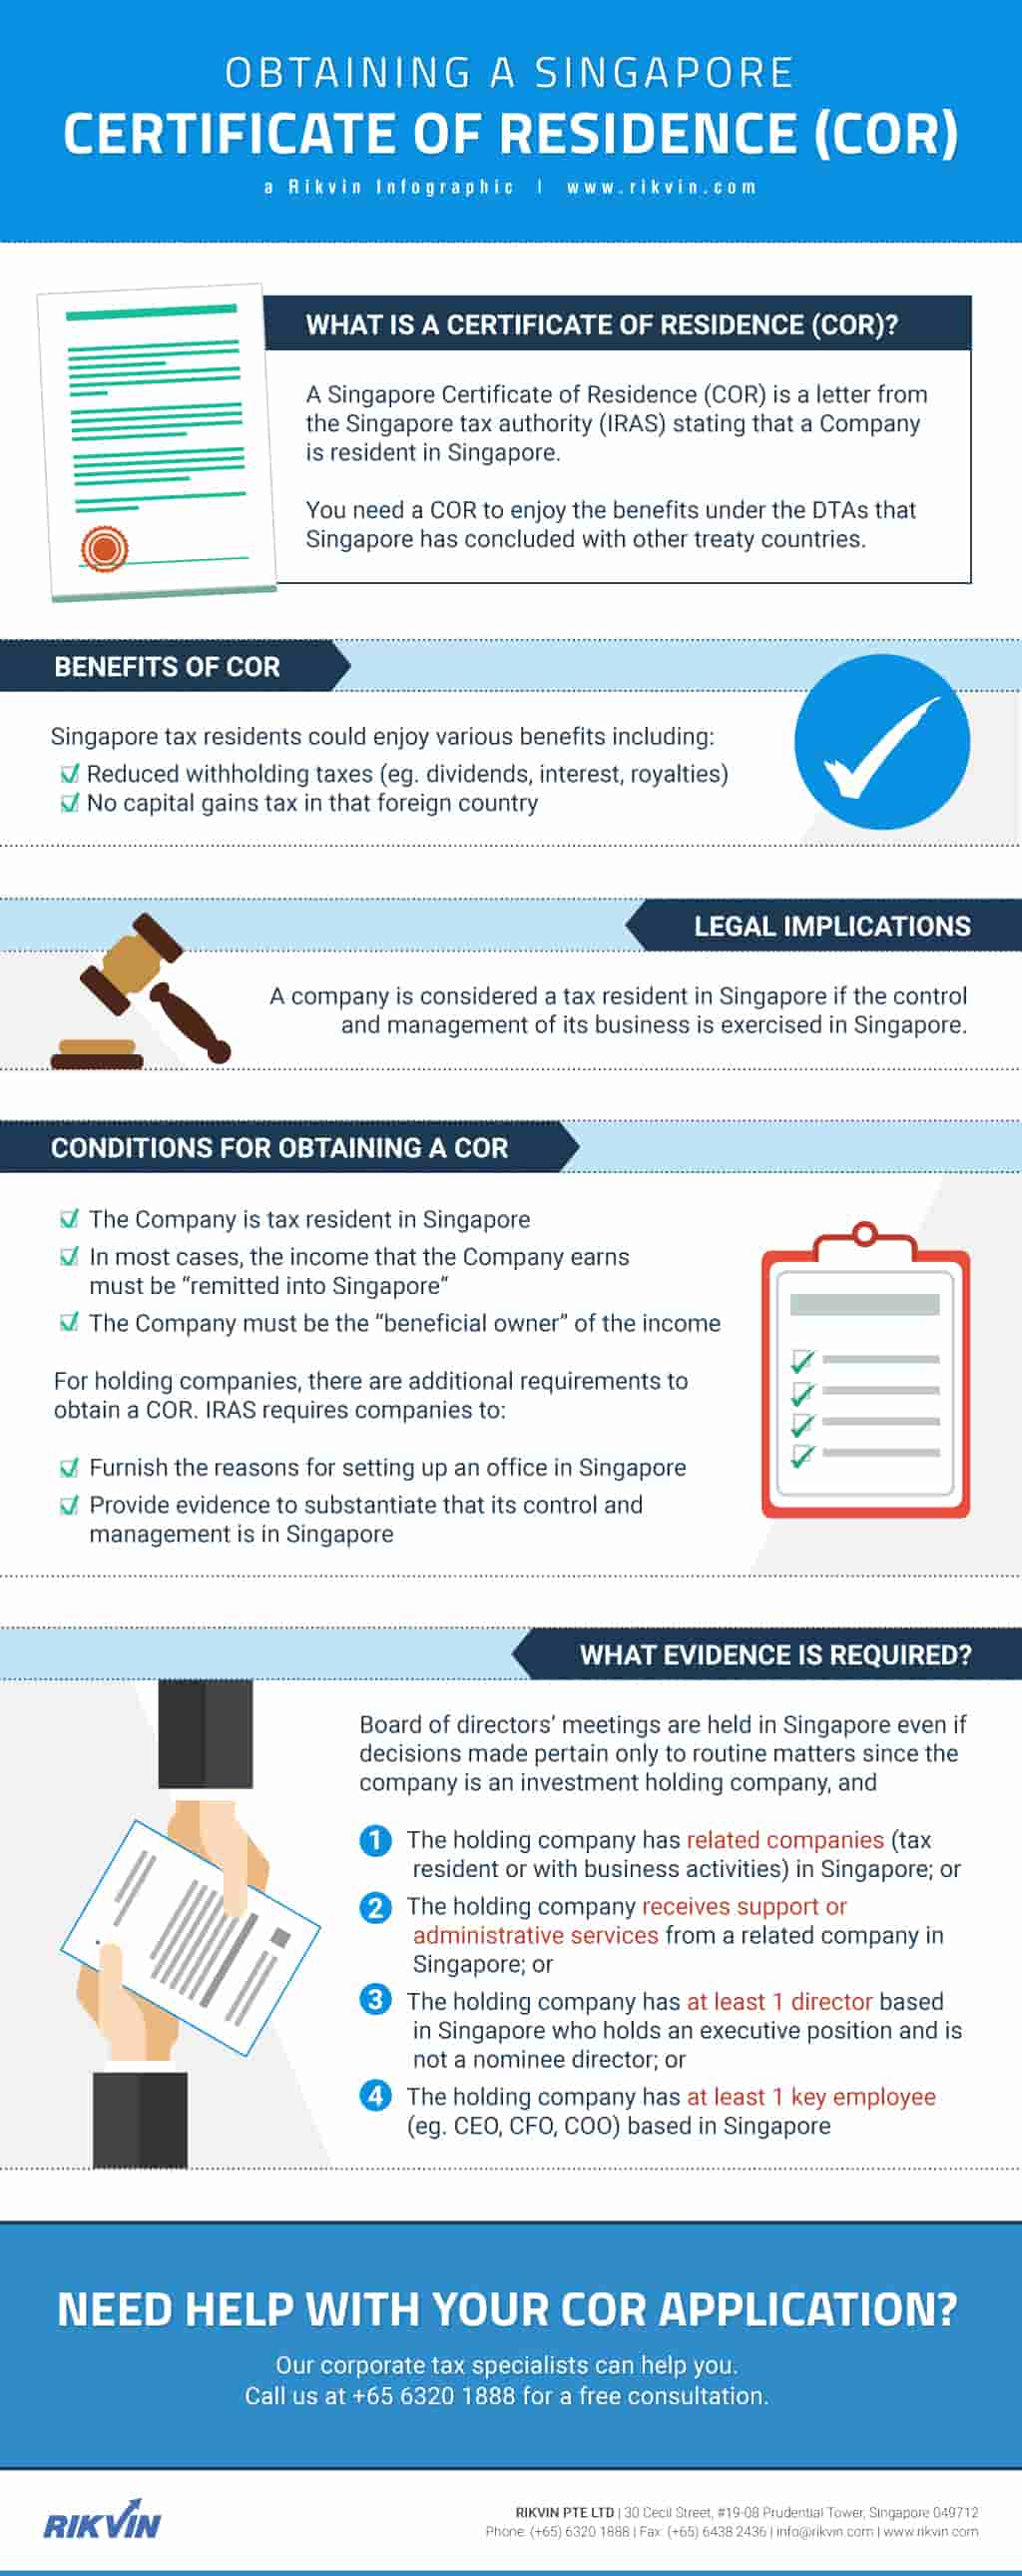 Obtaining_a_Singapore_Tax_Residency_Certificate-Rikvin_Infographic Obtaining a Singapore Certificate of Residence